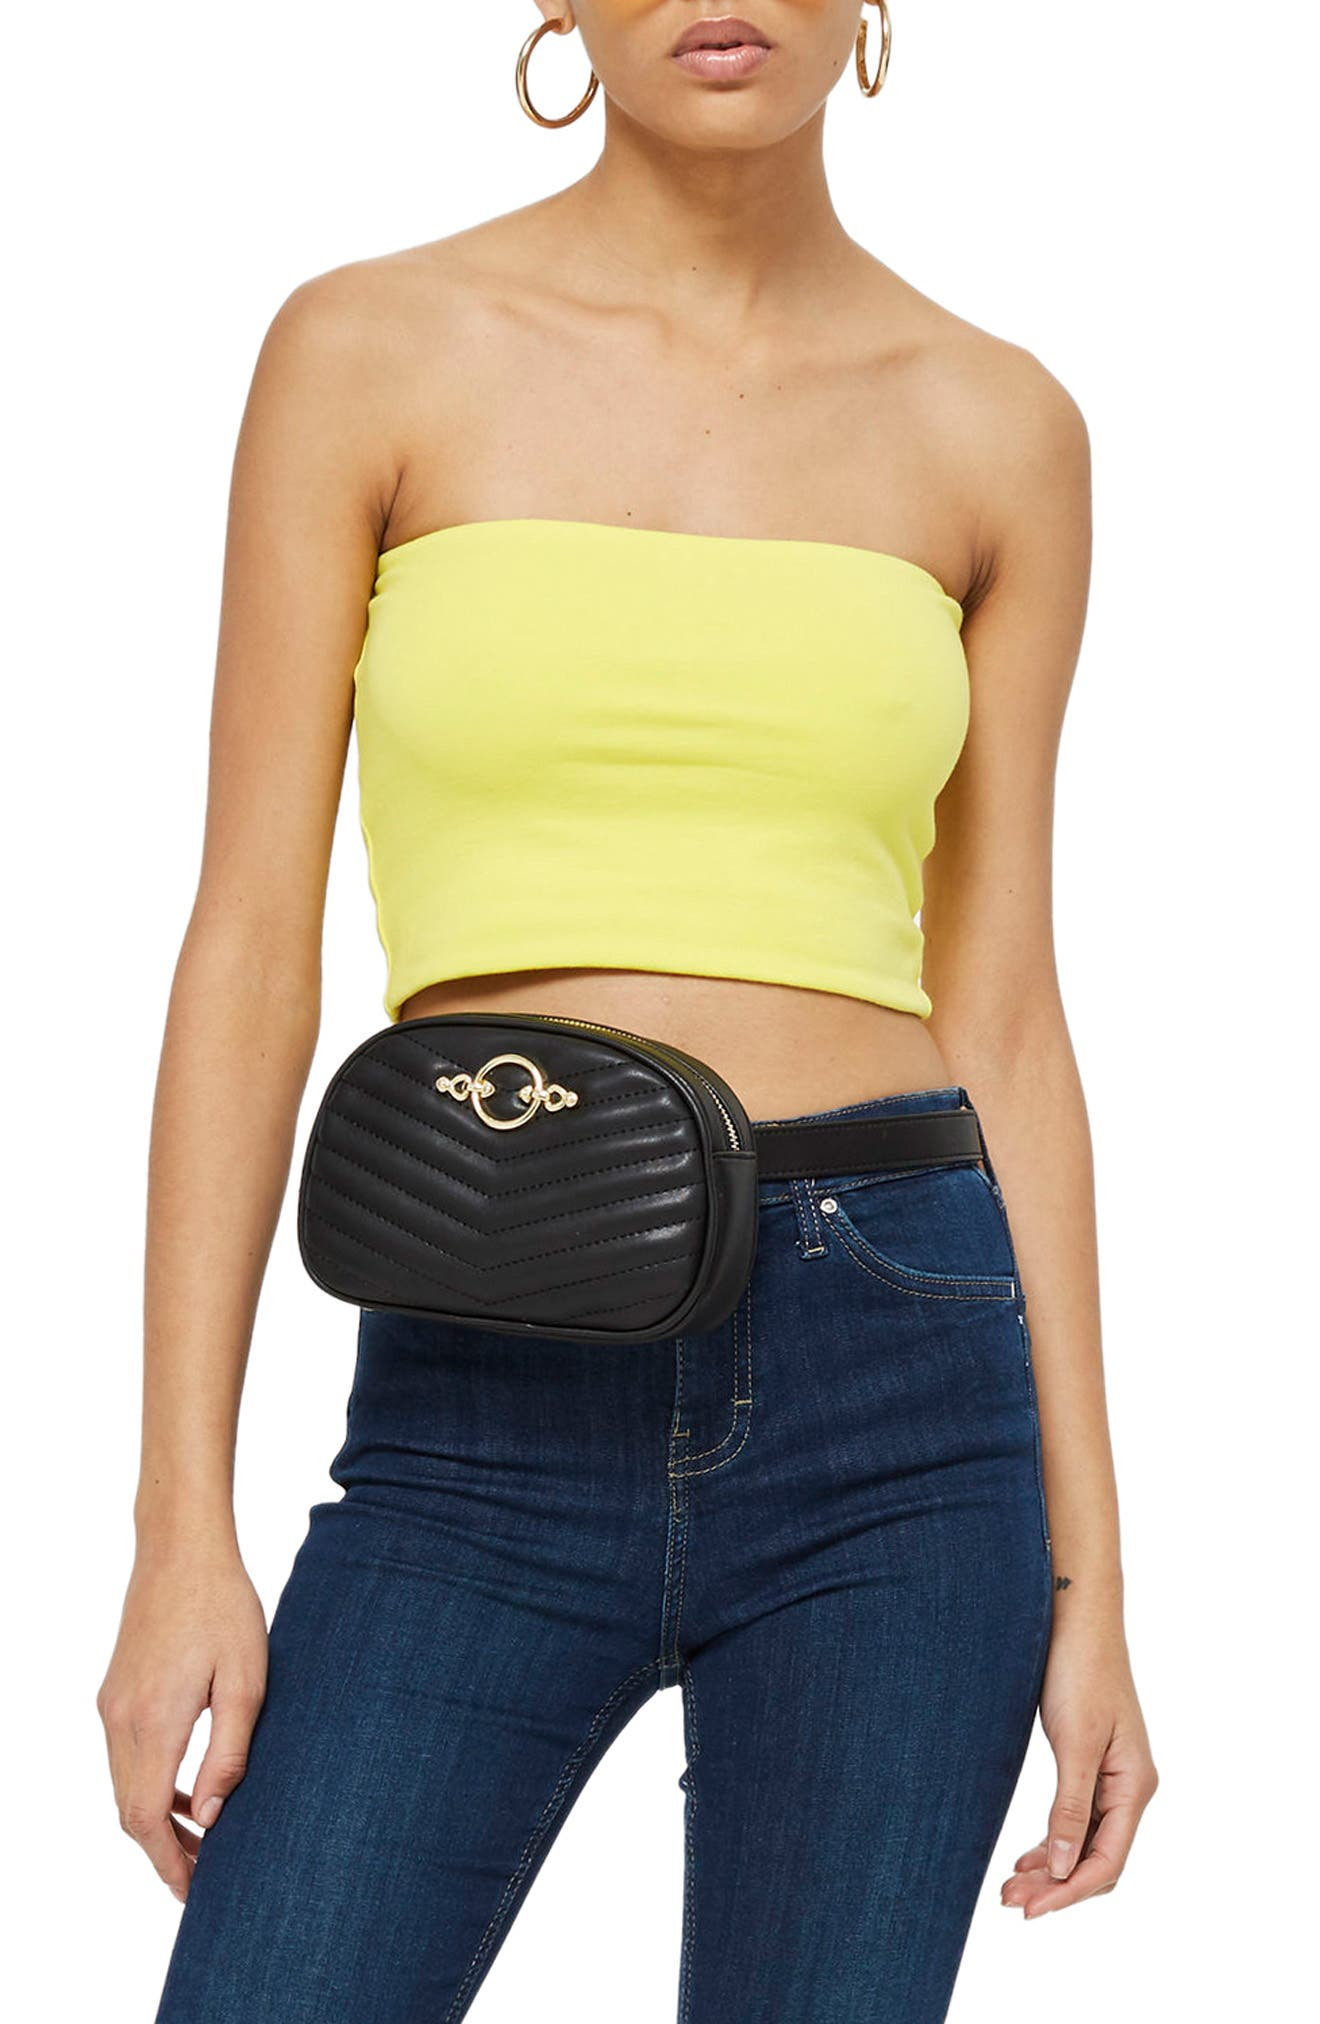 Topshop Solid Tube Top (2 for $18)